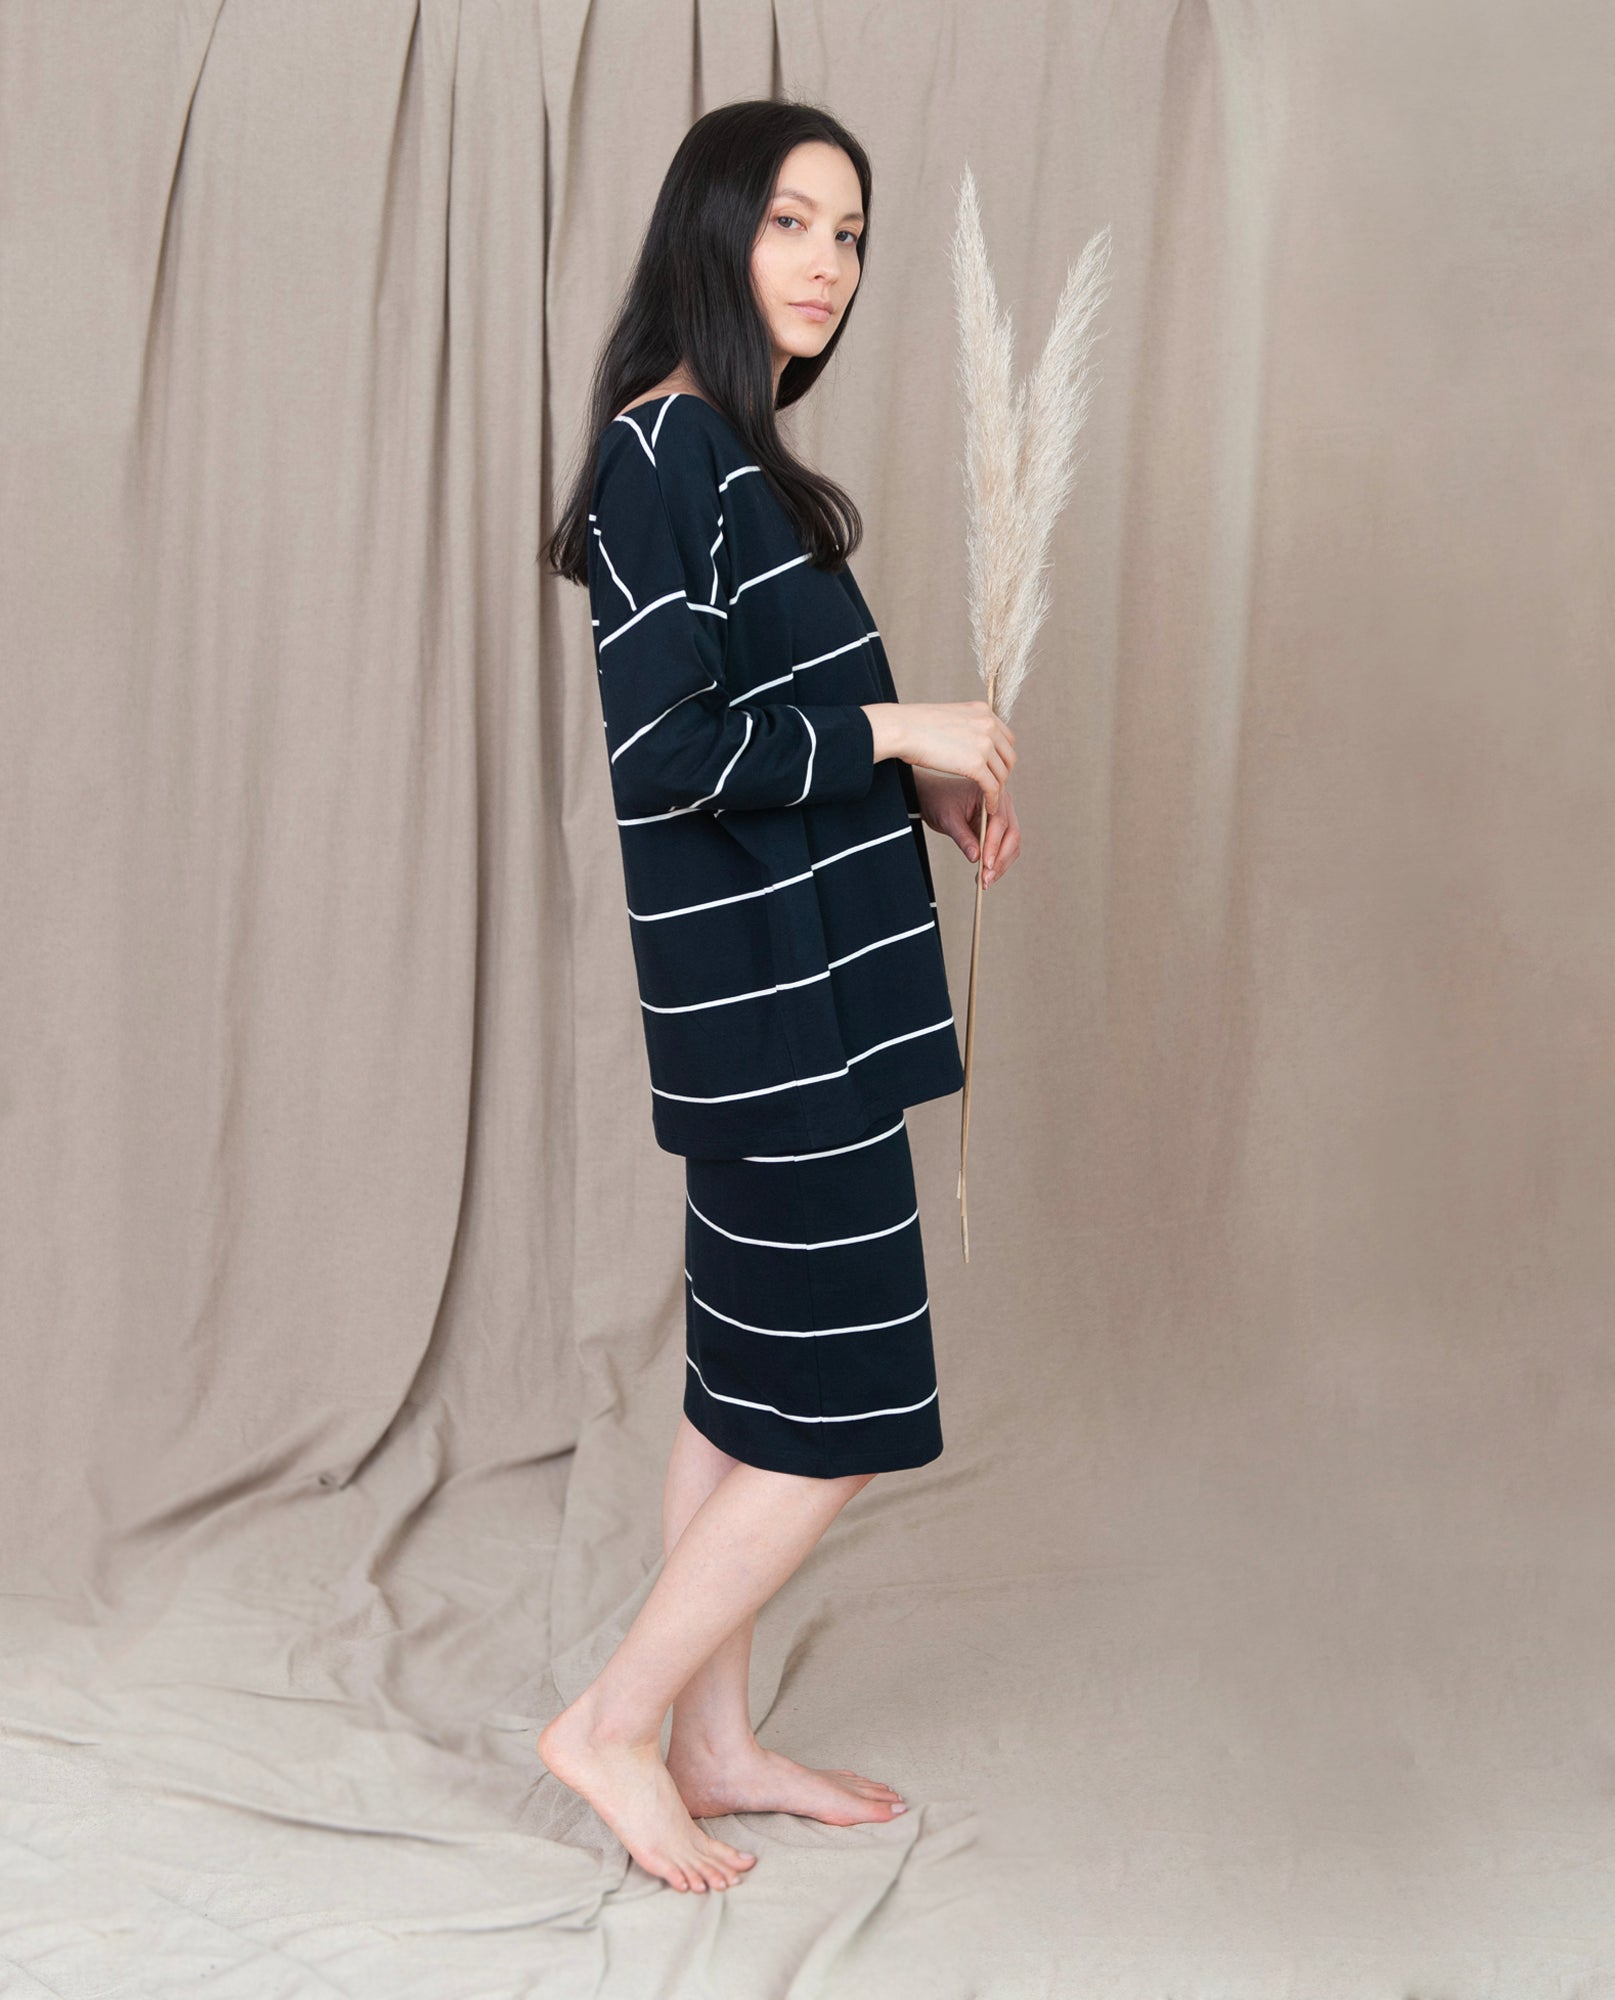 ADDISON Organic Cotton Skirt in Deep Indigo And Off White